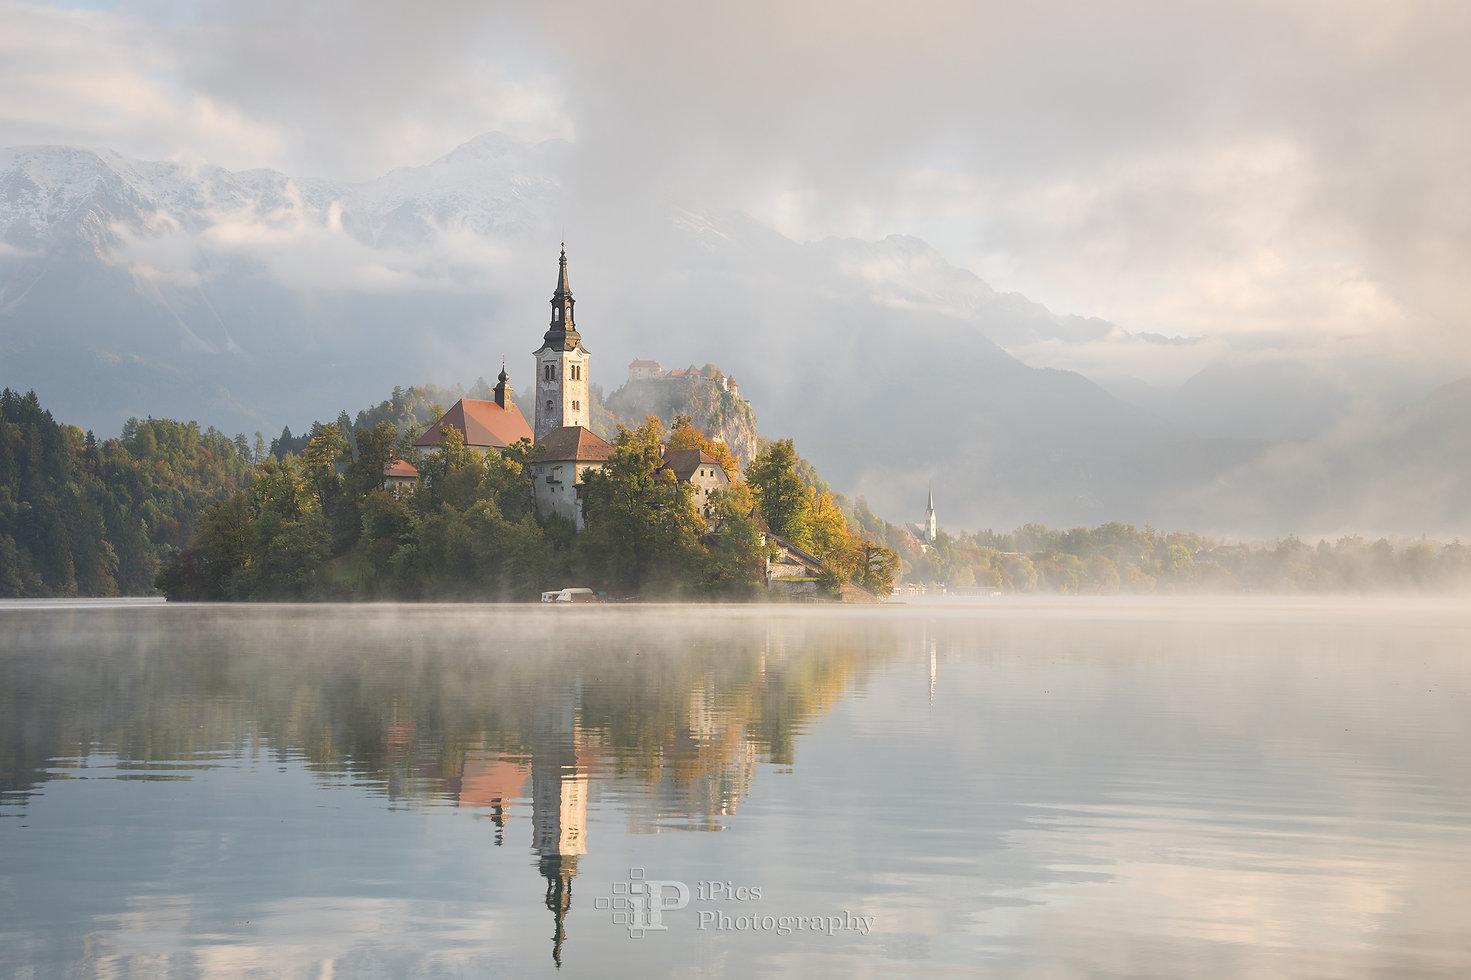 Landscape photograph of the church on the small island in Lake Bled and Bled Castle in the first sunlight of sunrise on a beautiful foggy morning in autumn with reflection in the calm water in Slovenia.